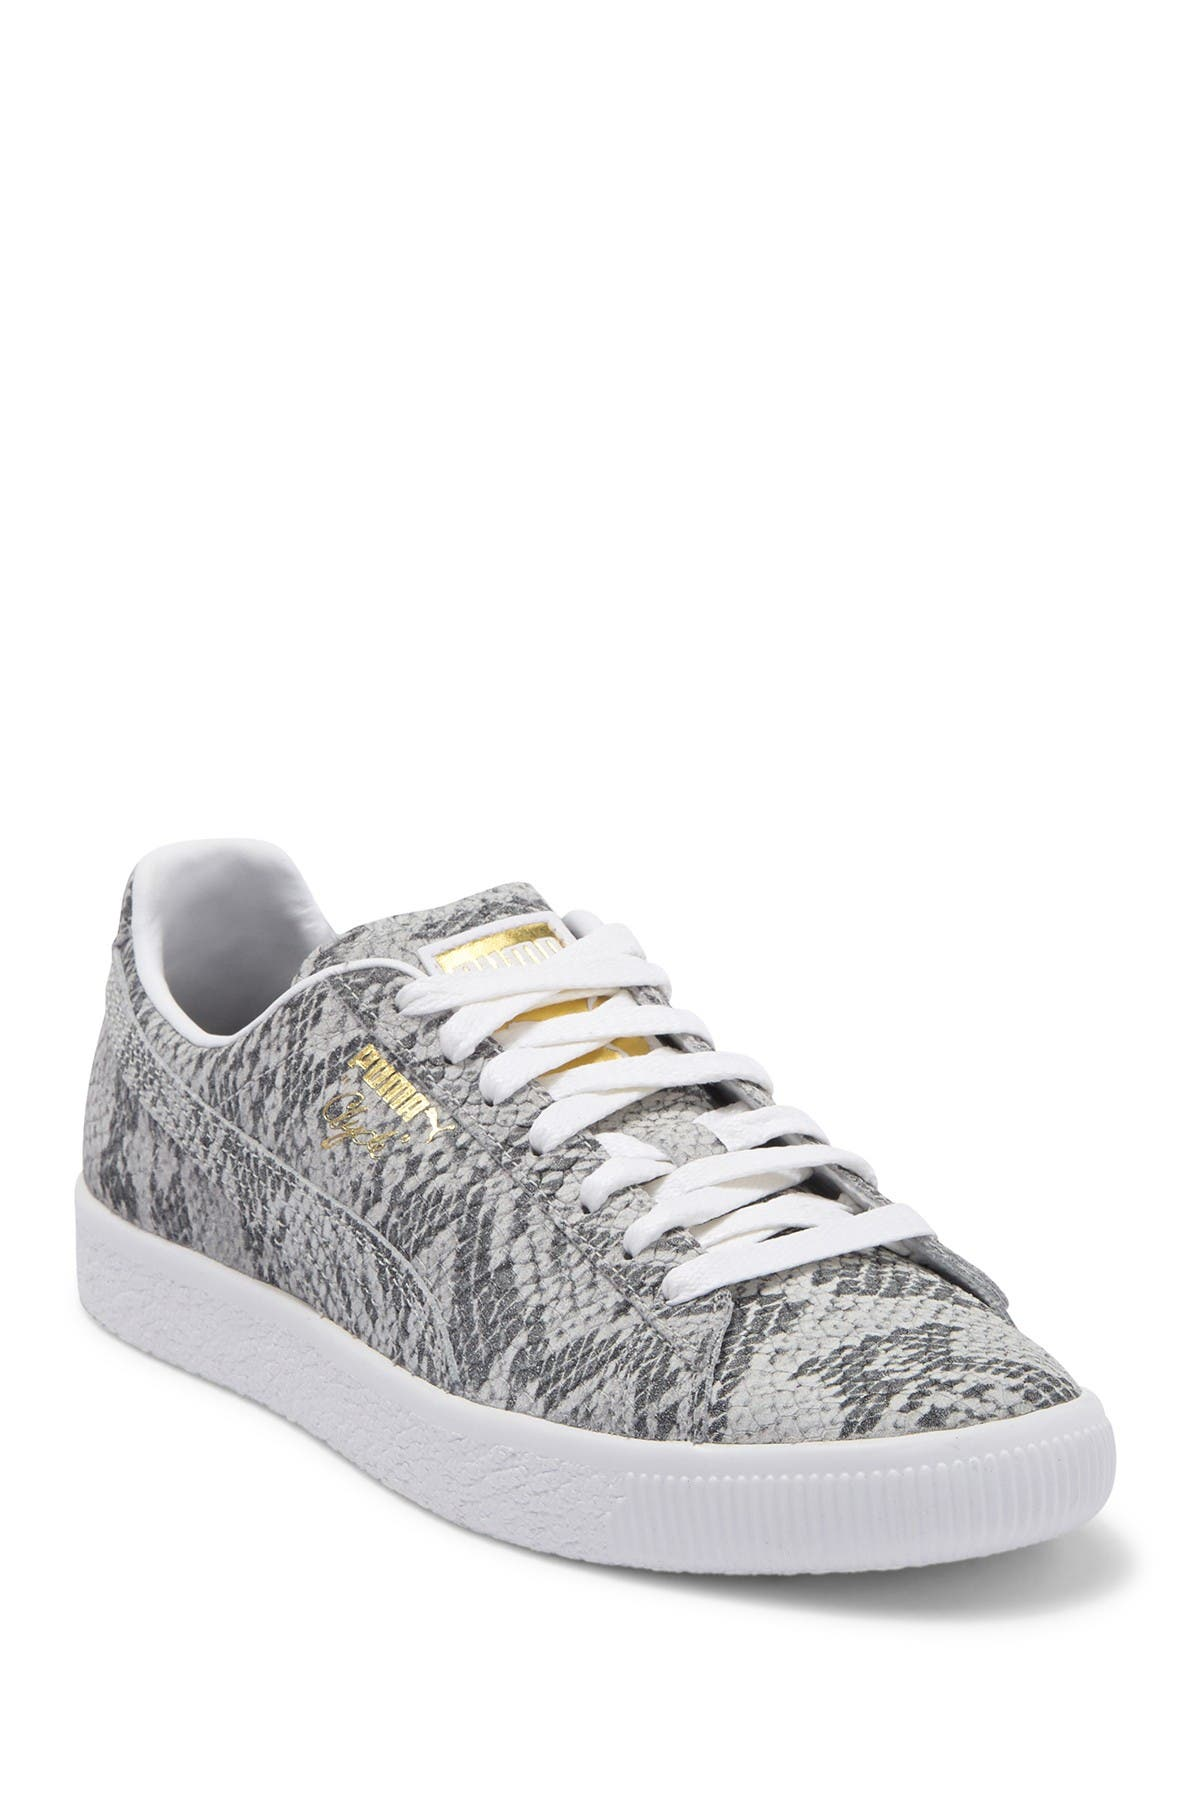 PUMA | Clyde AO Leather Snake Embossed